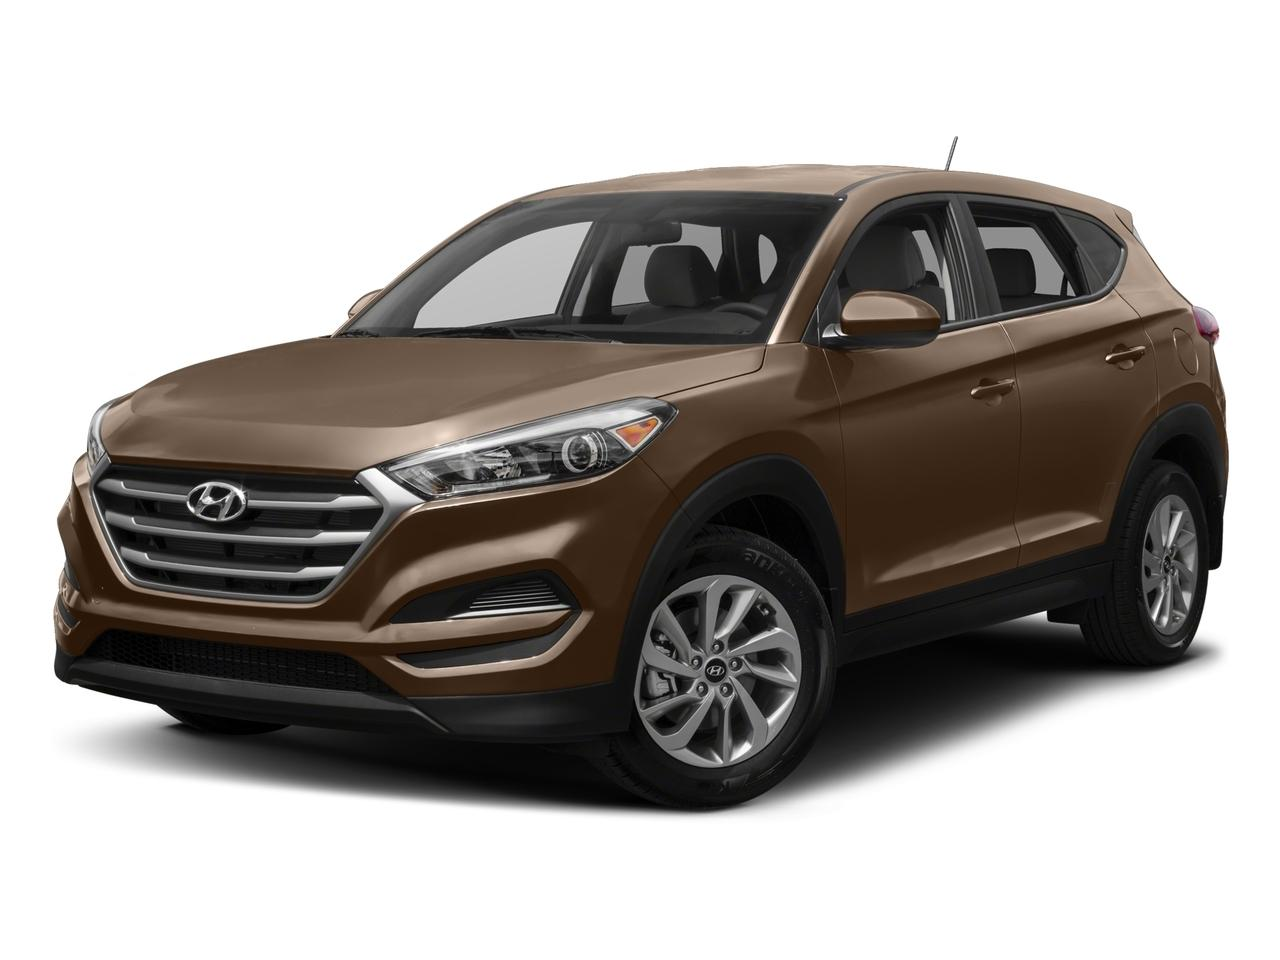 2017 Hyundai Tucson Vehicle Photo in Peoria, IL 61615